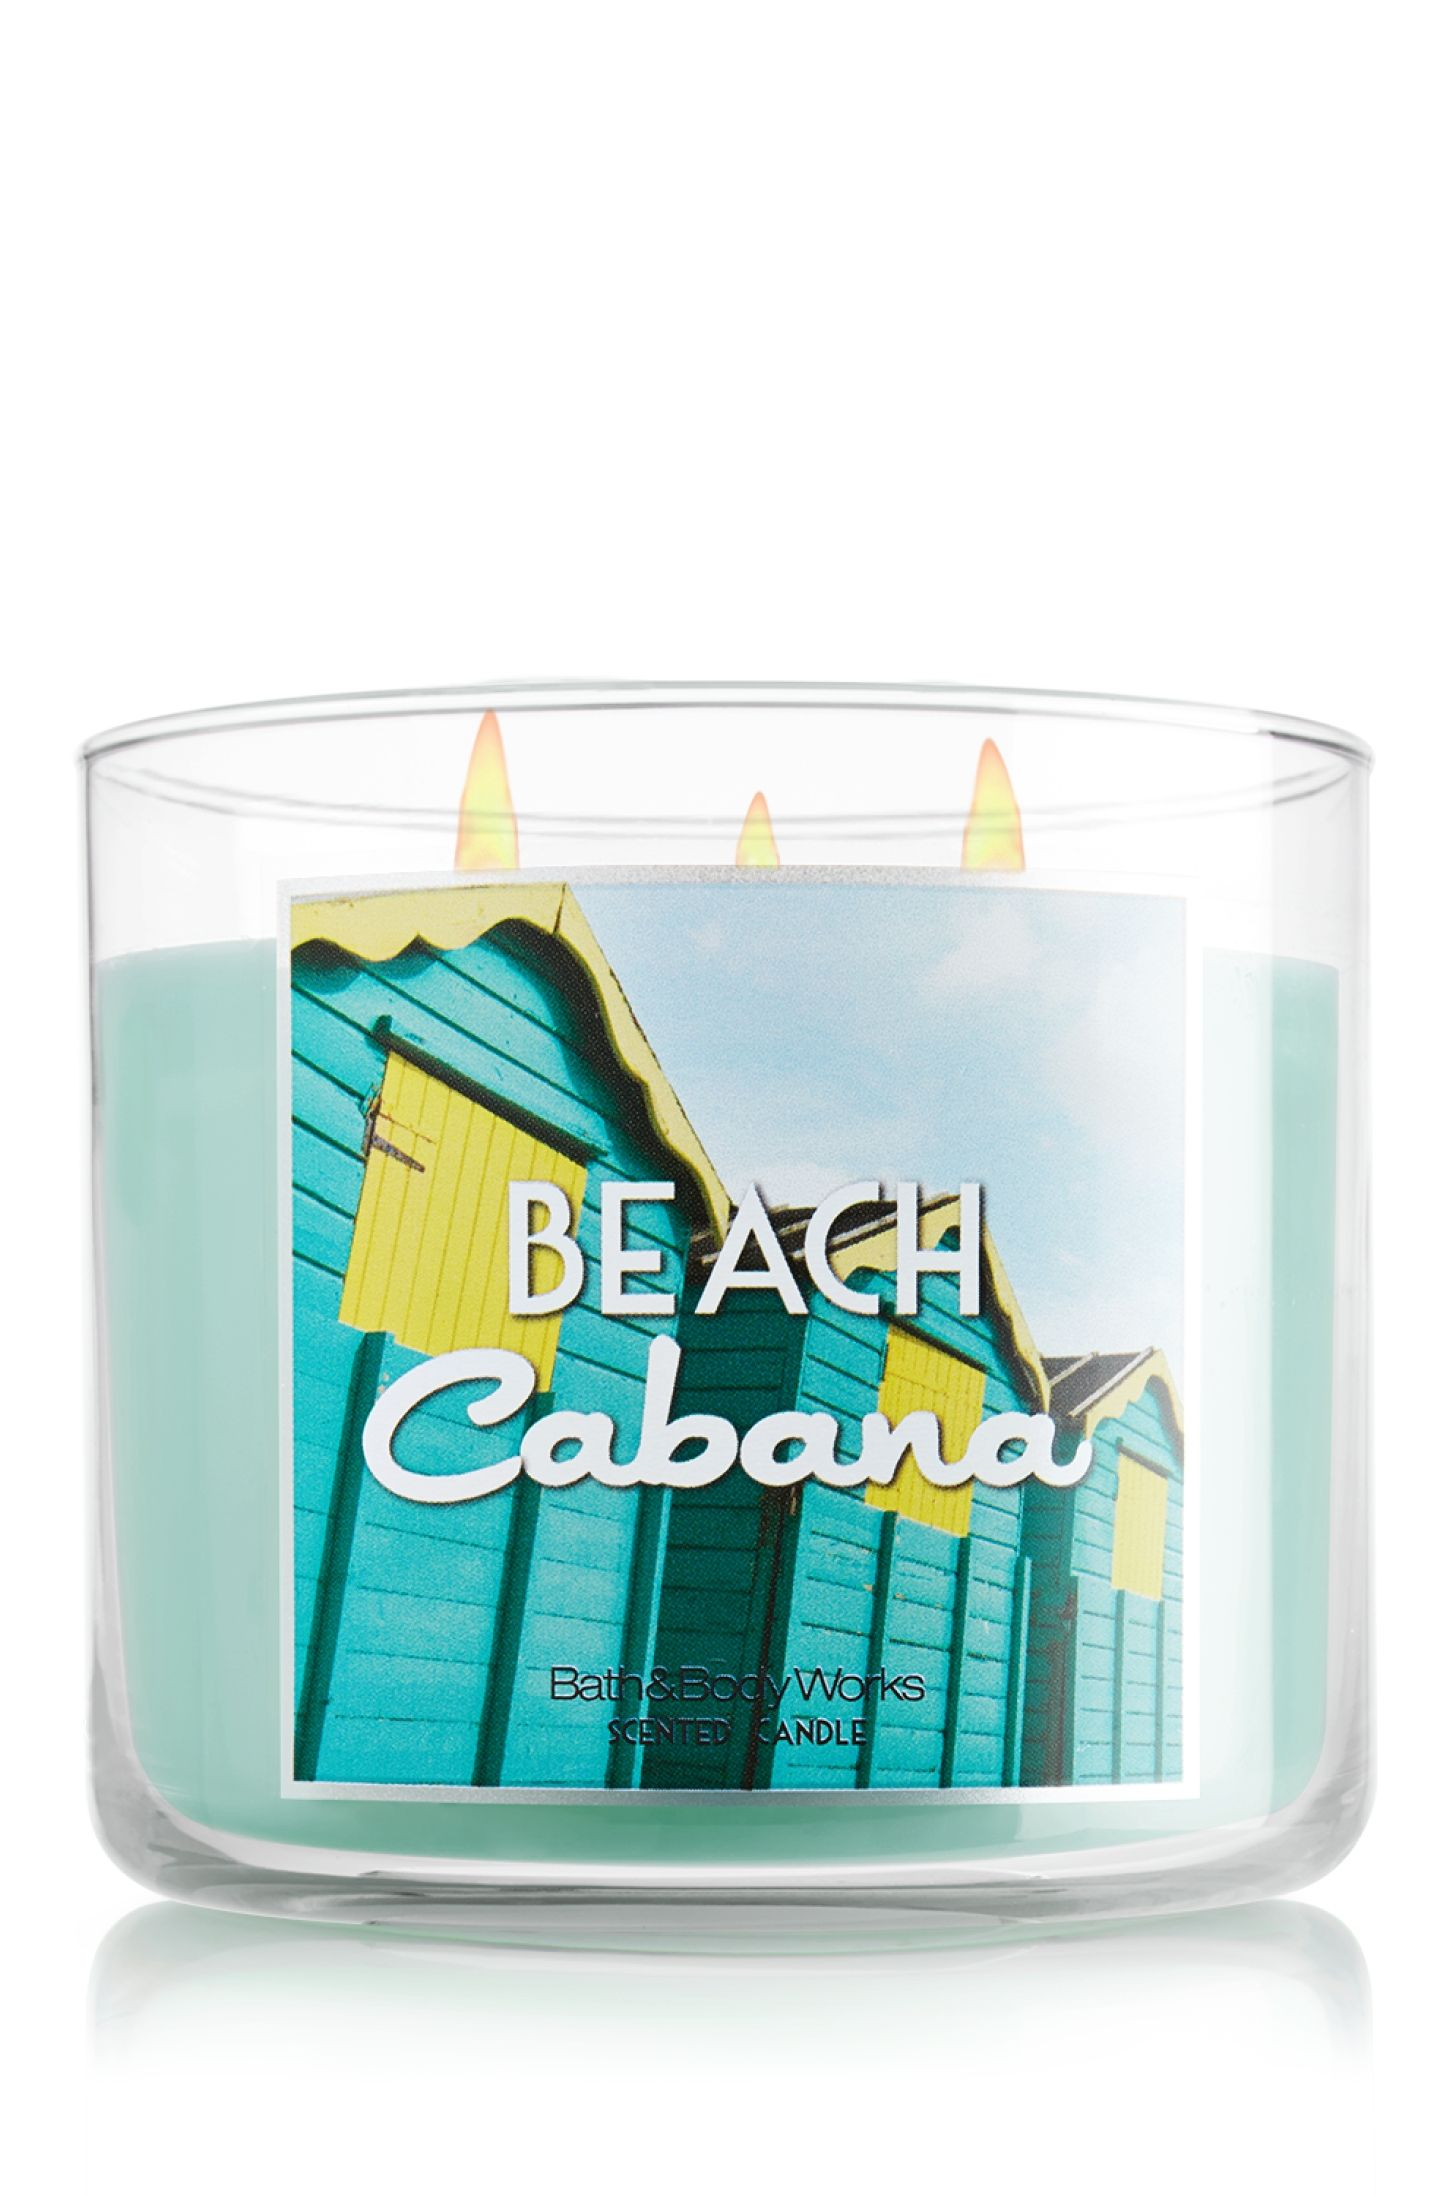 Home & Garden Bath & Body Works BEACH CABANA Large 3 Wick Candle  Jasmine orange blossom musk Décor Candles